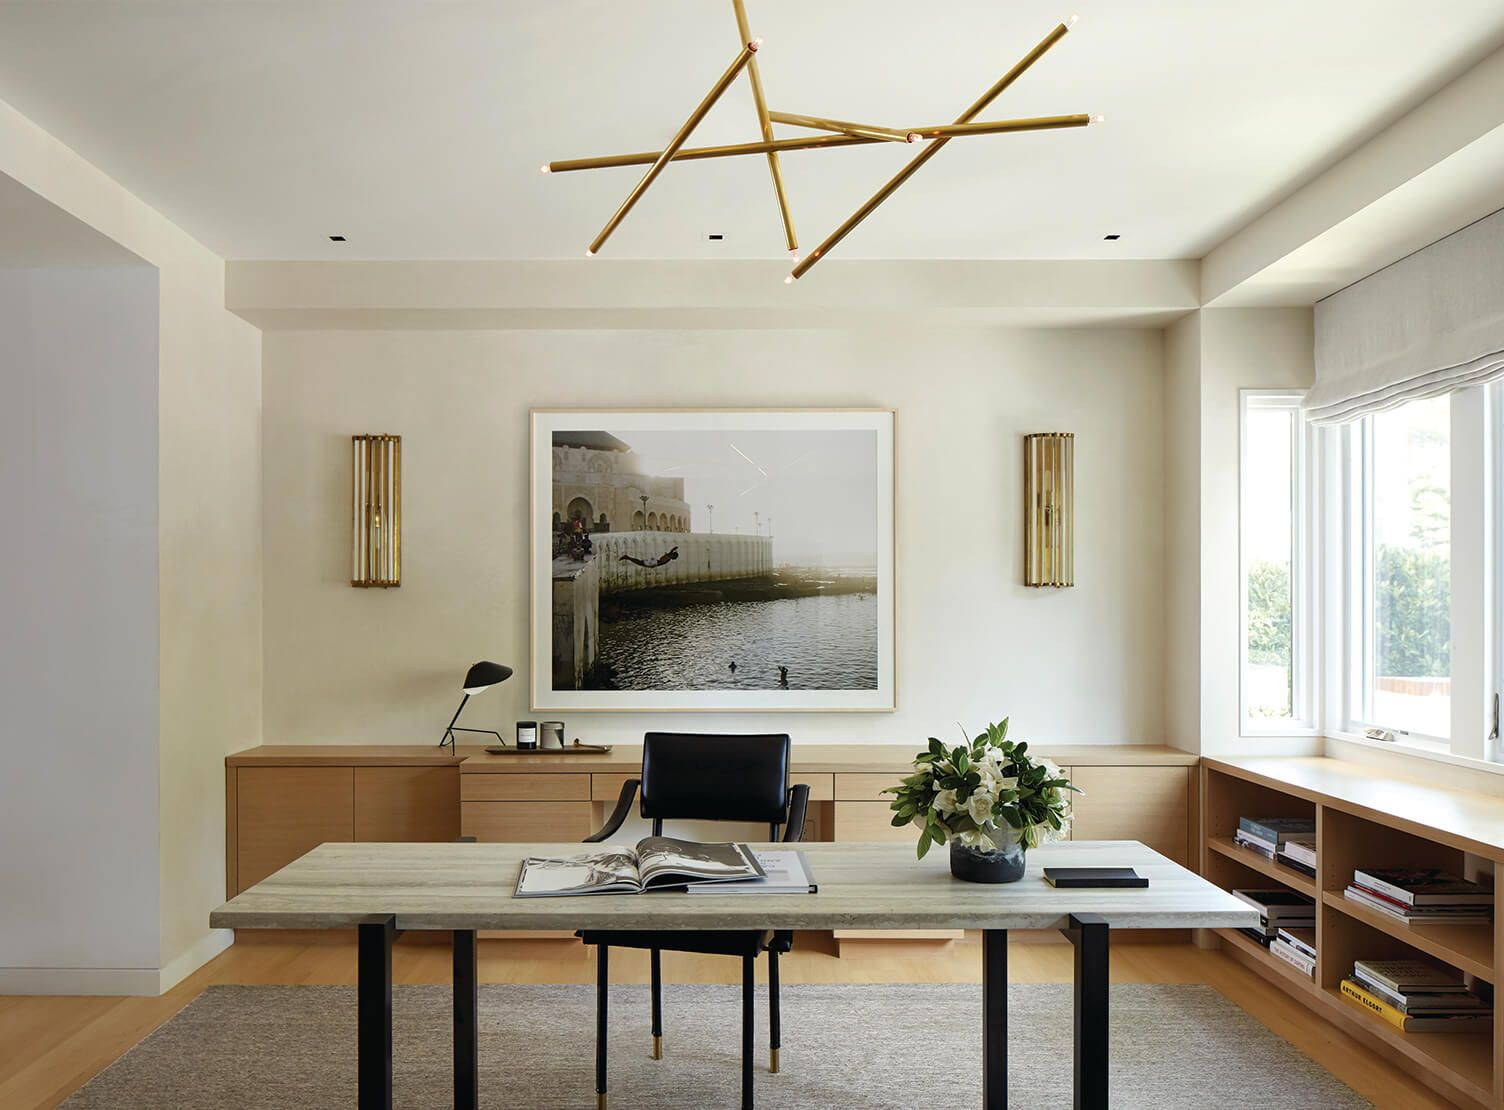 An Acclaimed San Francisco Interior Design Firm. Catherine Kwong Design  Specializes In High End Residential And Hospitality Projects, With An  Emphasis On ...